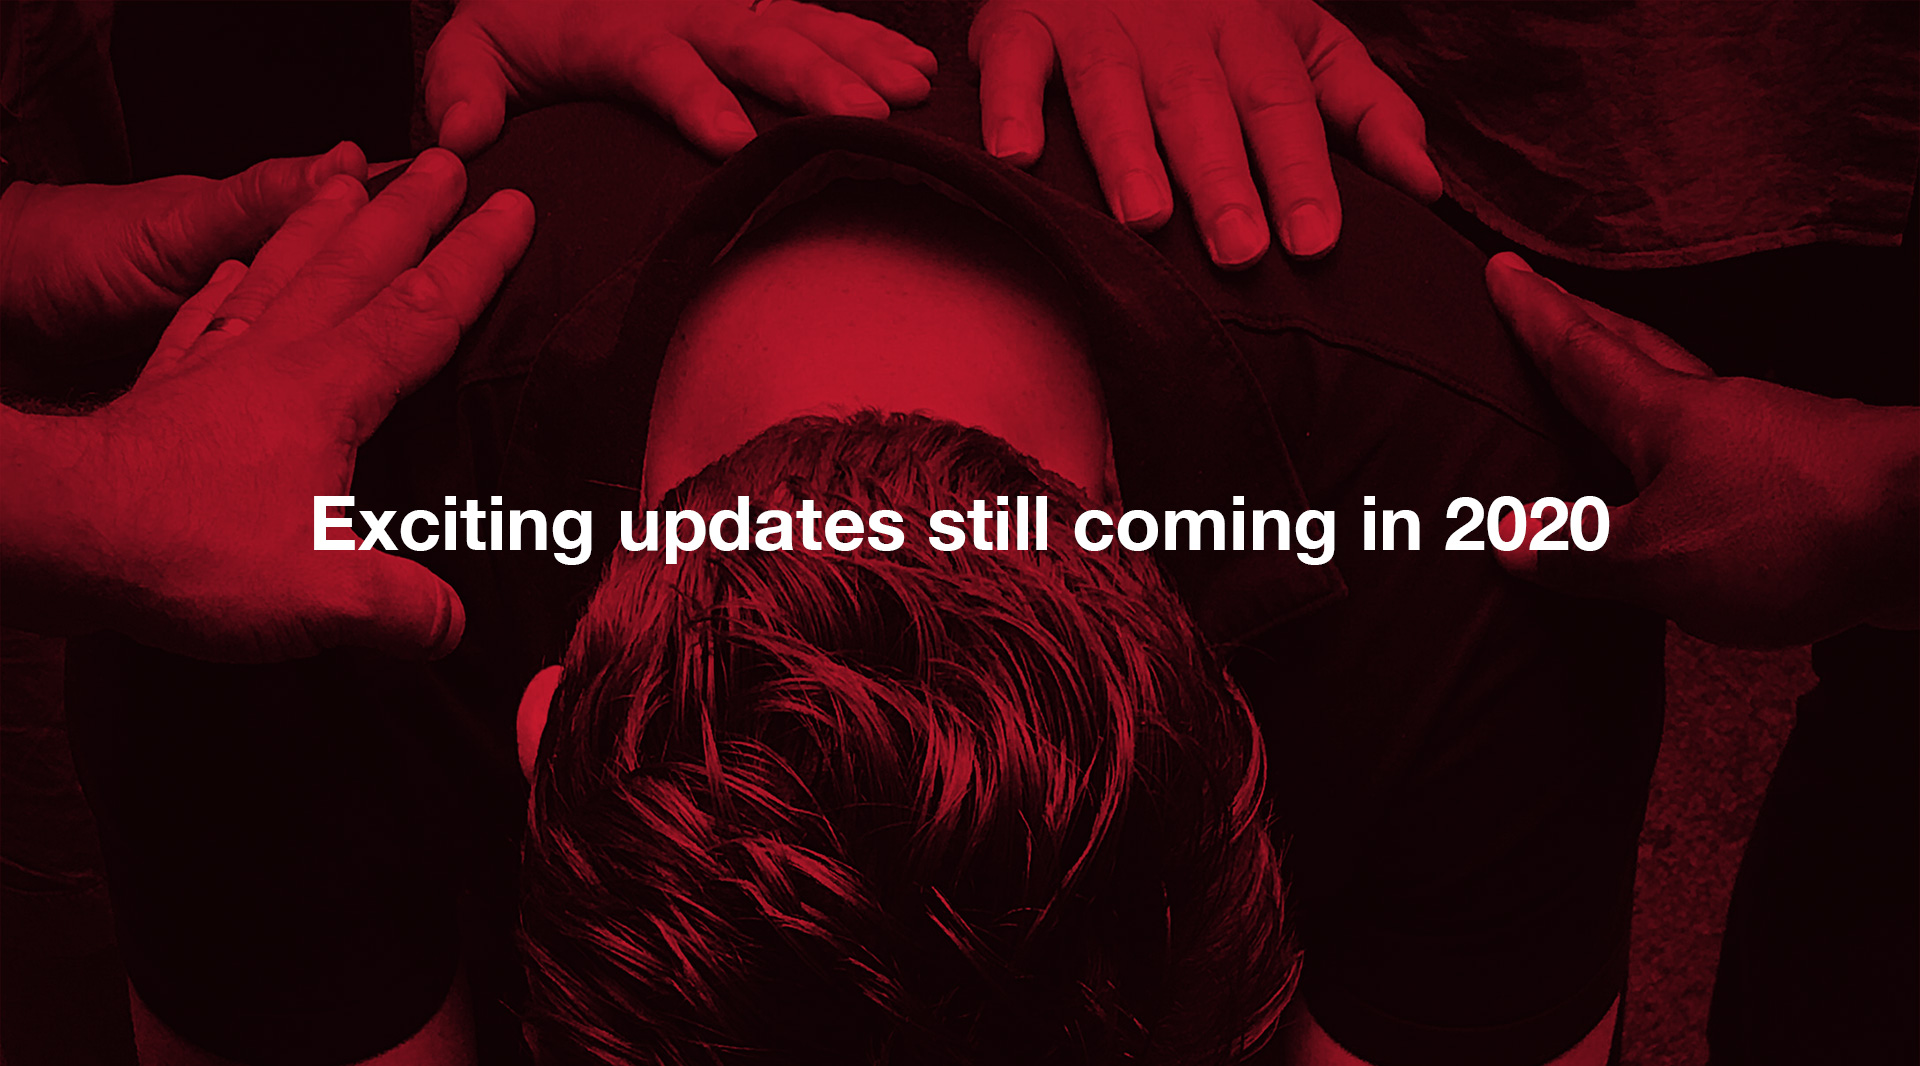 Exciting updates still coming in 2020